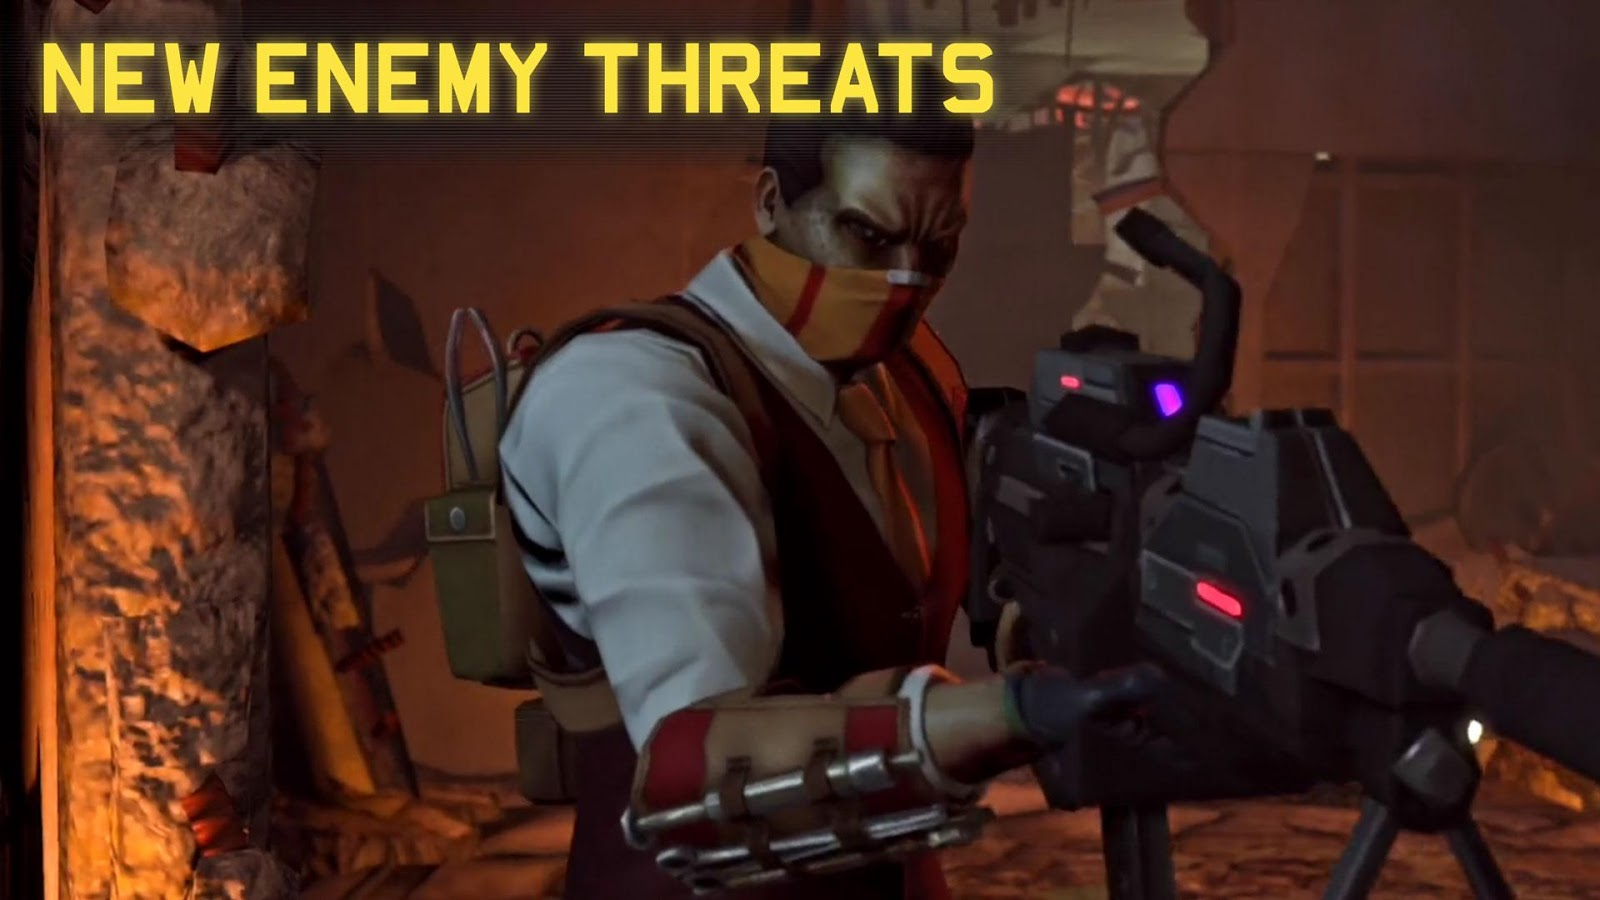 Xcom Enemy Within v1.2.0 APK Full indir